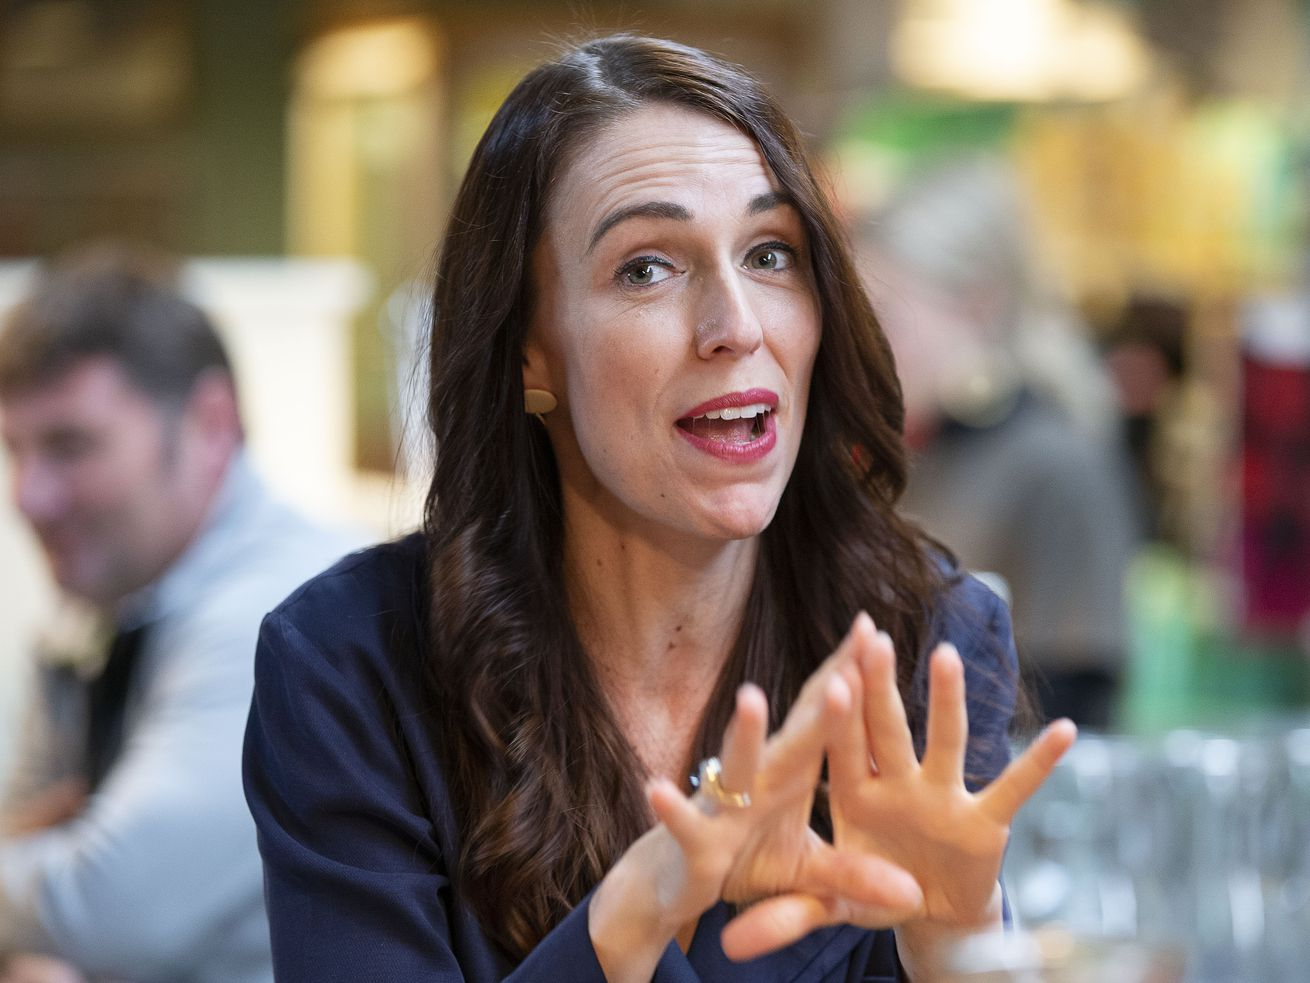 New Zealand Prime Minister Jacinda Ardernwants to prioritize national well-being.